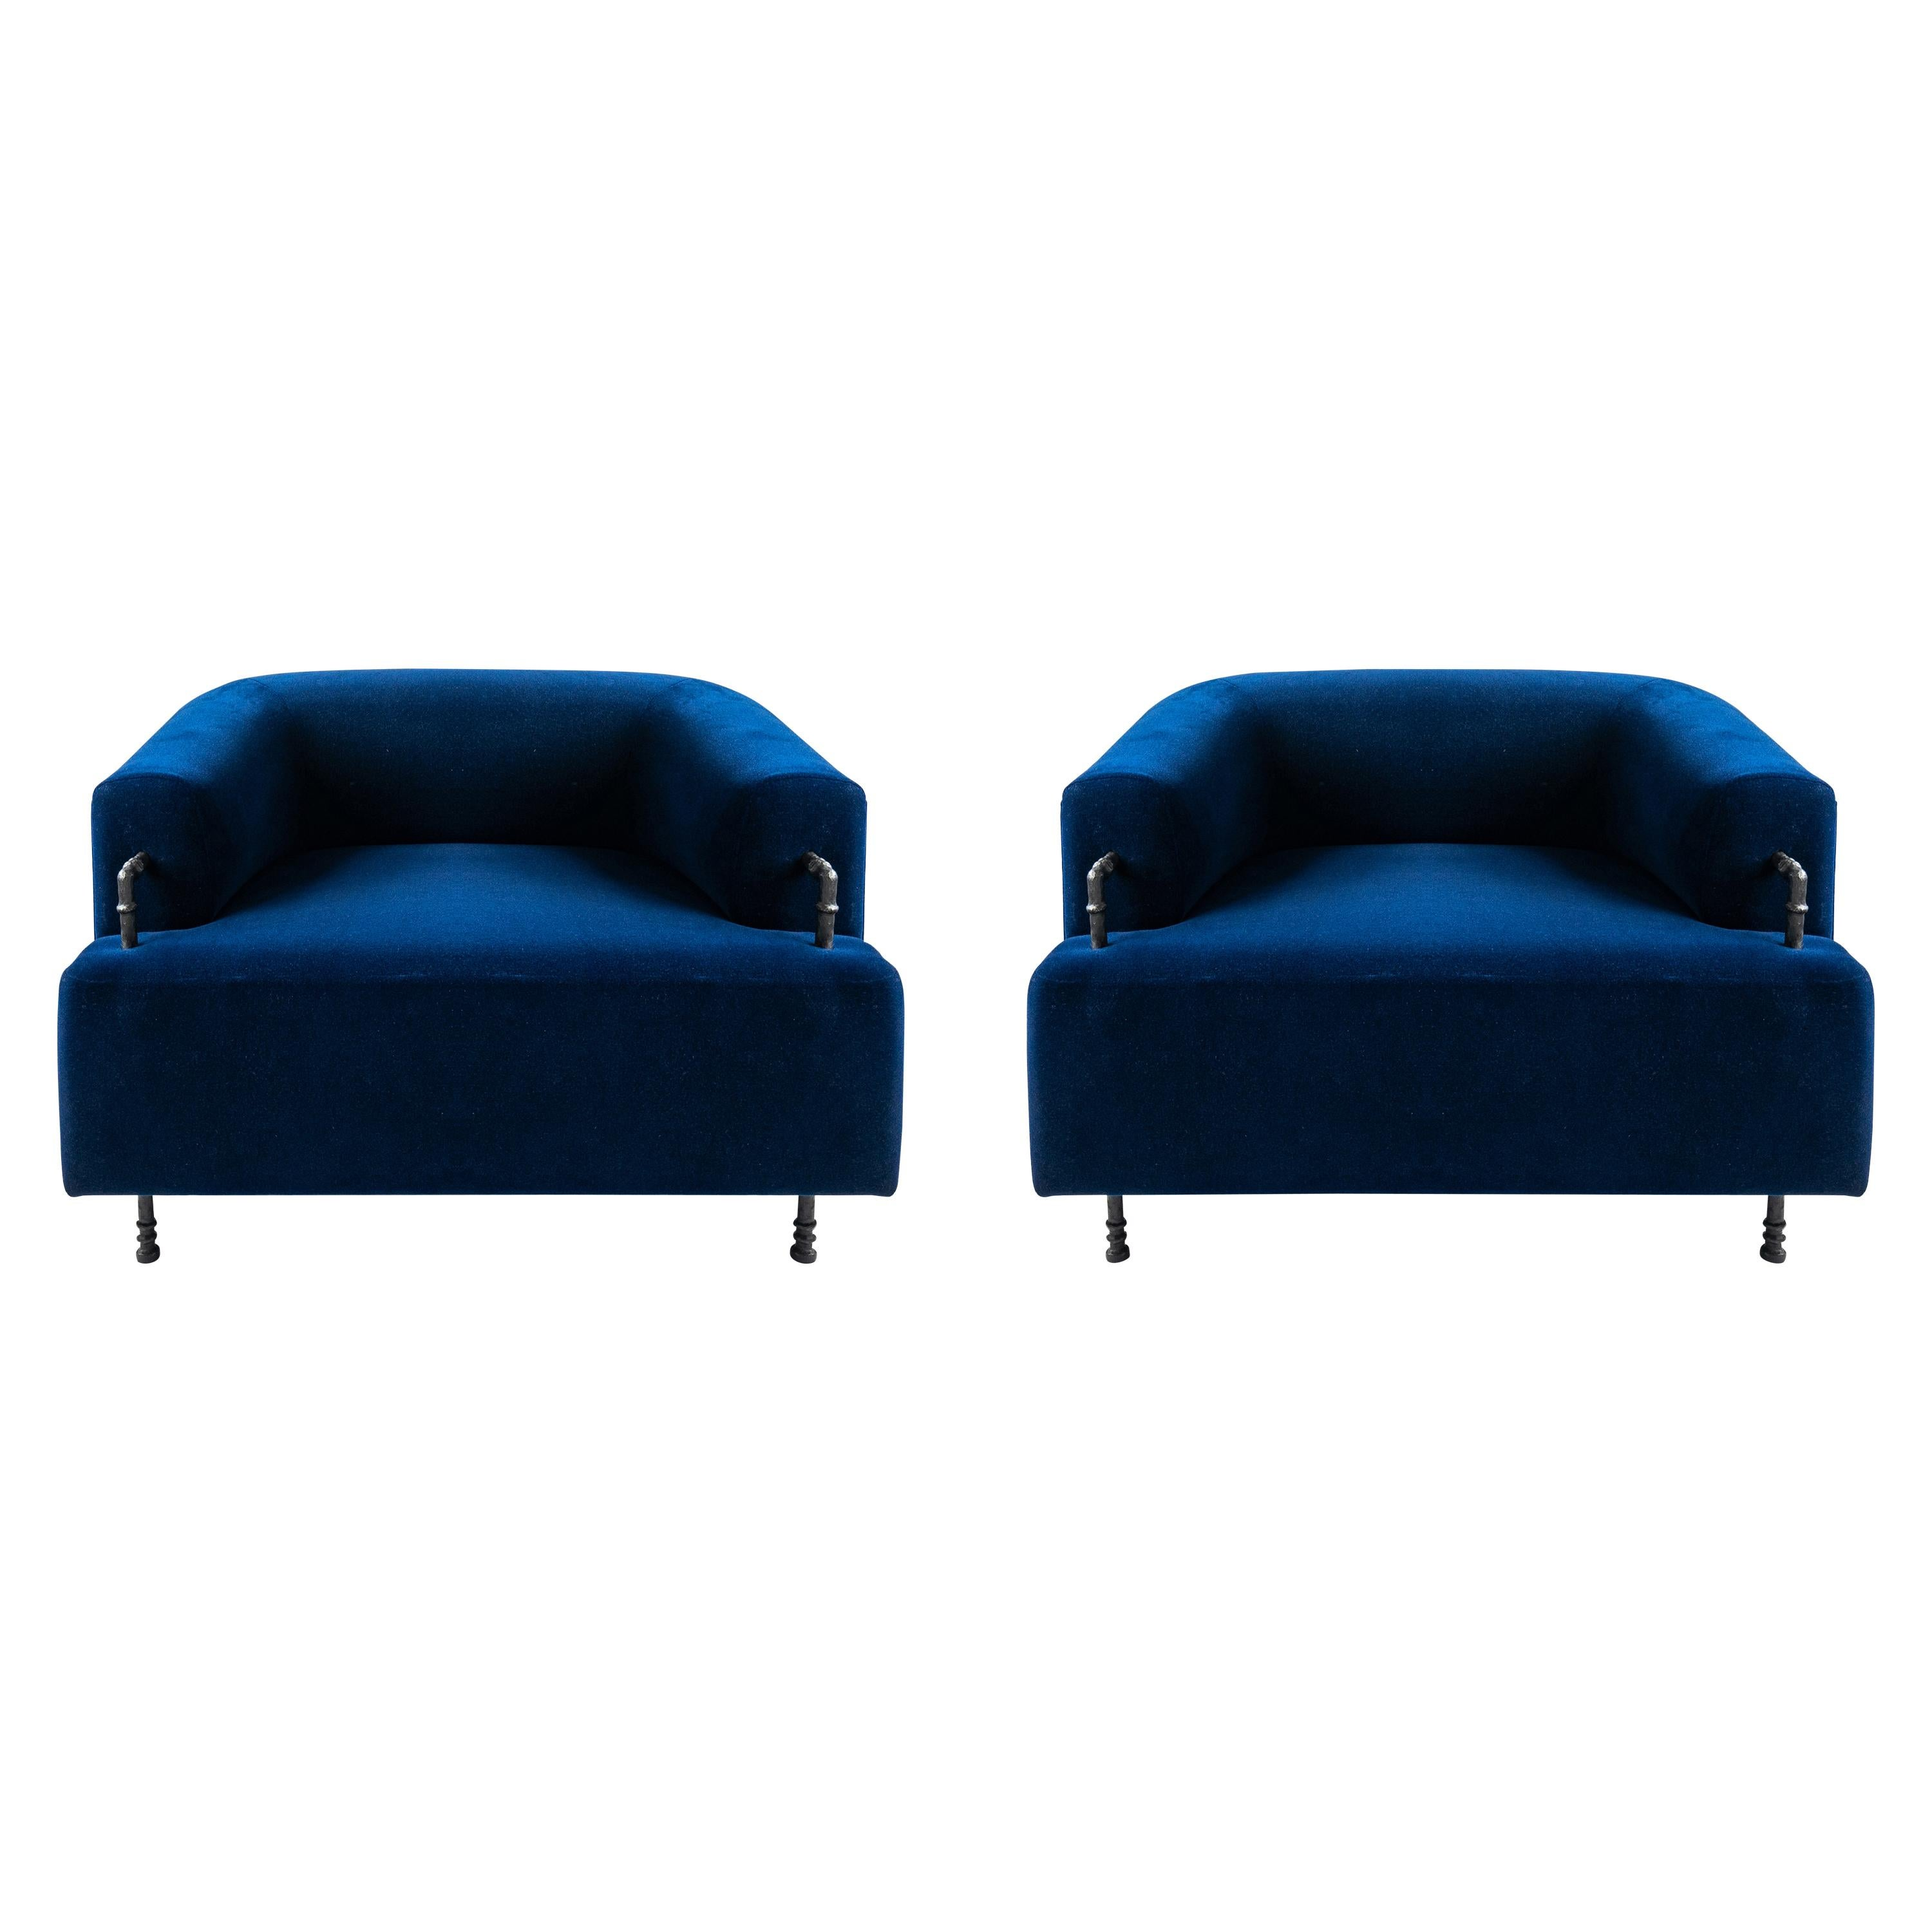 Pair of Contemporary Round Armchairs with Hand Carved Steel/Plaster Elements